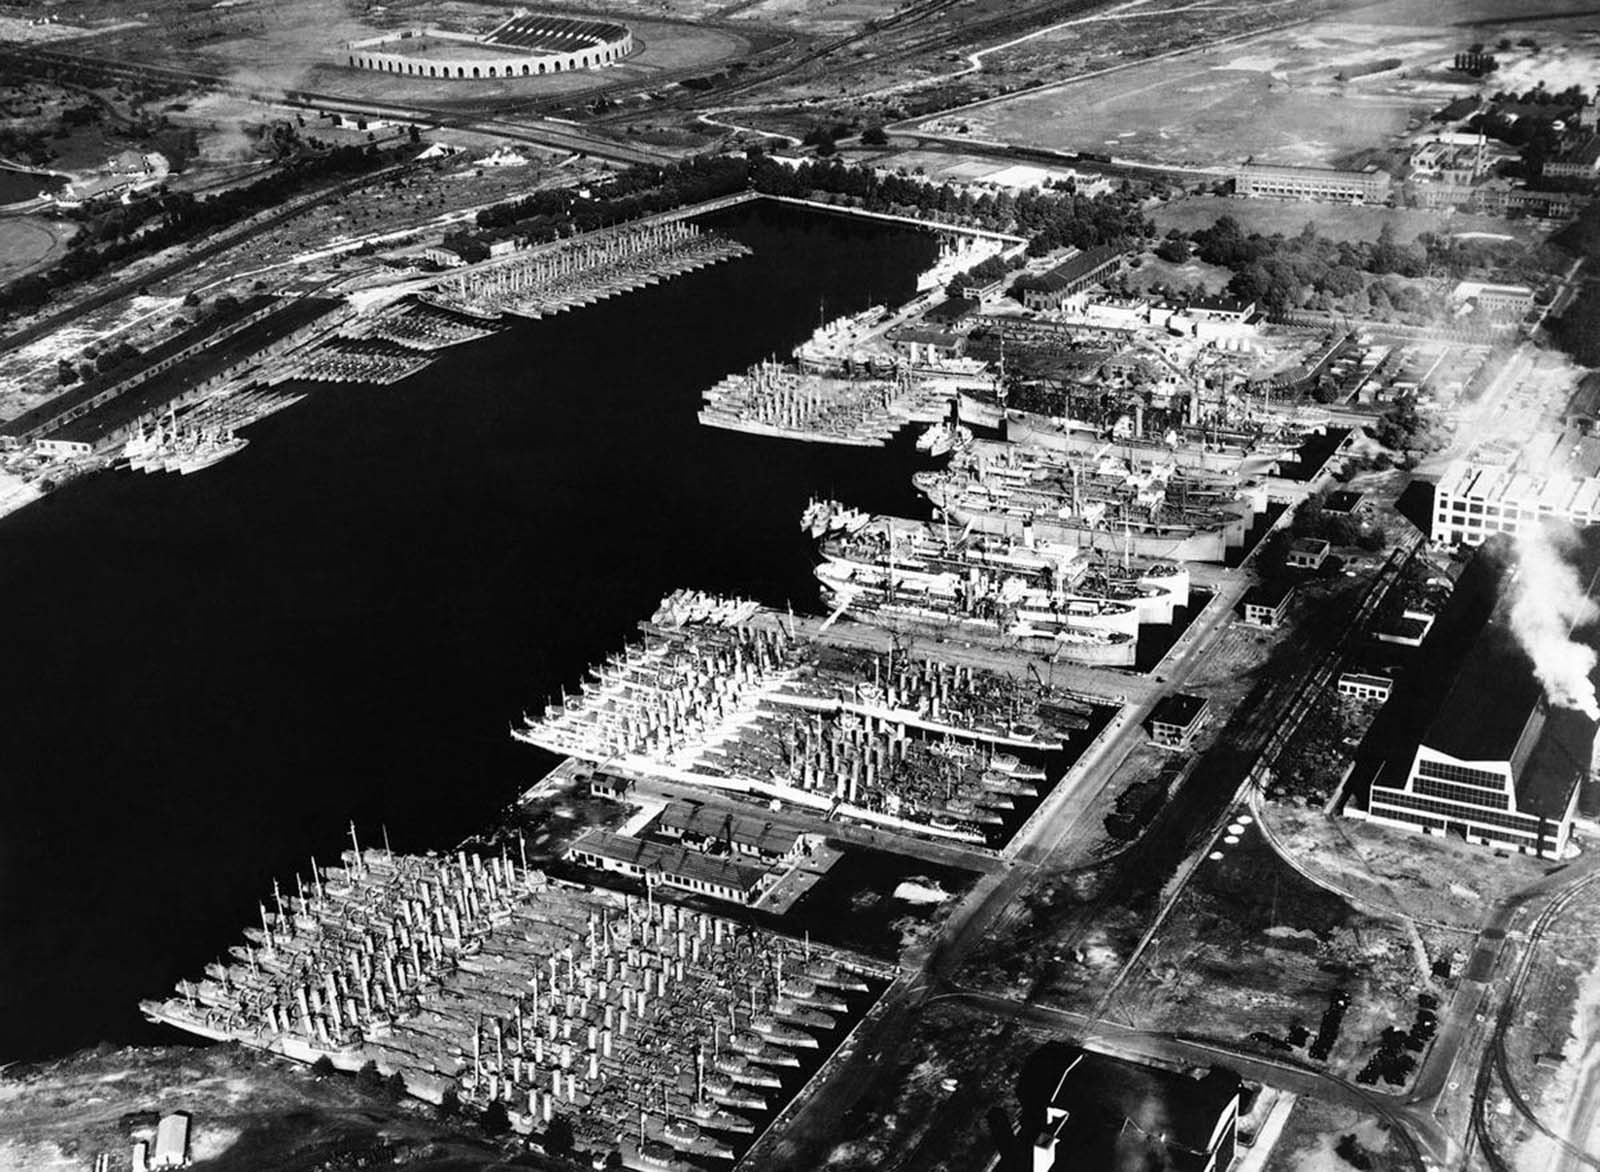 Outdated, but serviceable U.S. destroyers sit in the Back Bay at the Philadelphia Navy Yard, on August 28, 1940. Plans were well underway to bring these ships up to date and transfer them to Allied countries to aid their defense. These programs would be signed into law as the Lend-Lease program in March of 1941, and would result in billions of dollars worth of war material being shipped overseas.